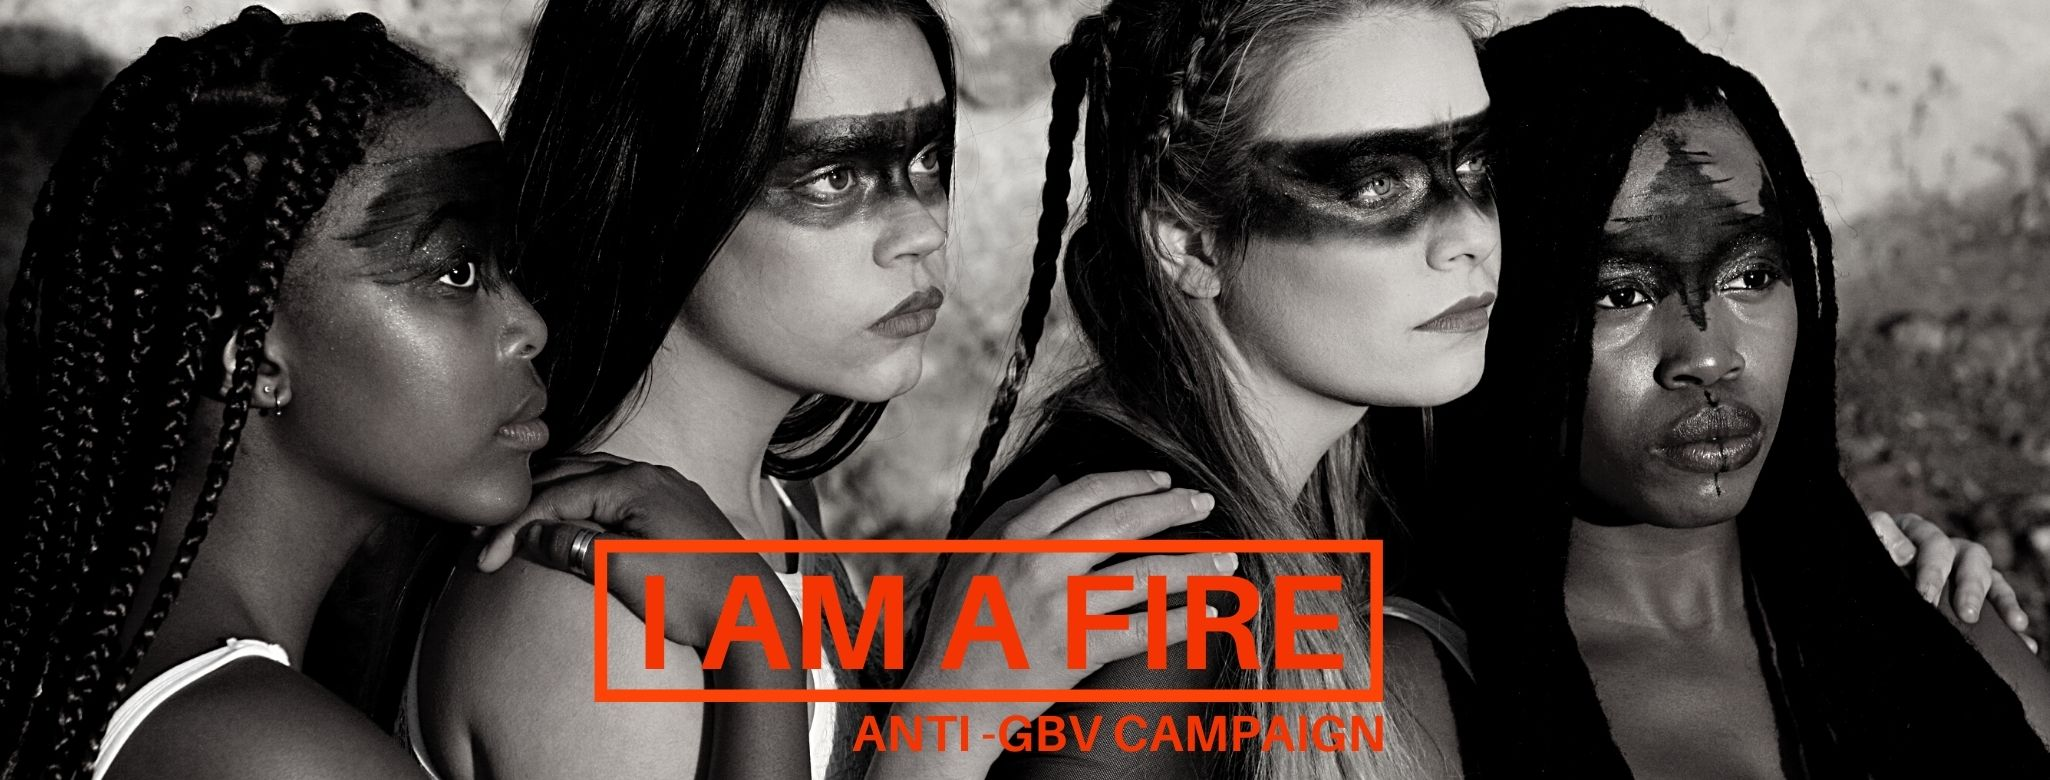 """Amy Tjasink Releases Powerful Anti-GBV Campaign Song Titled """"I am a Fire"""""""